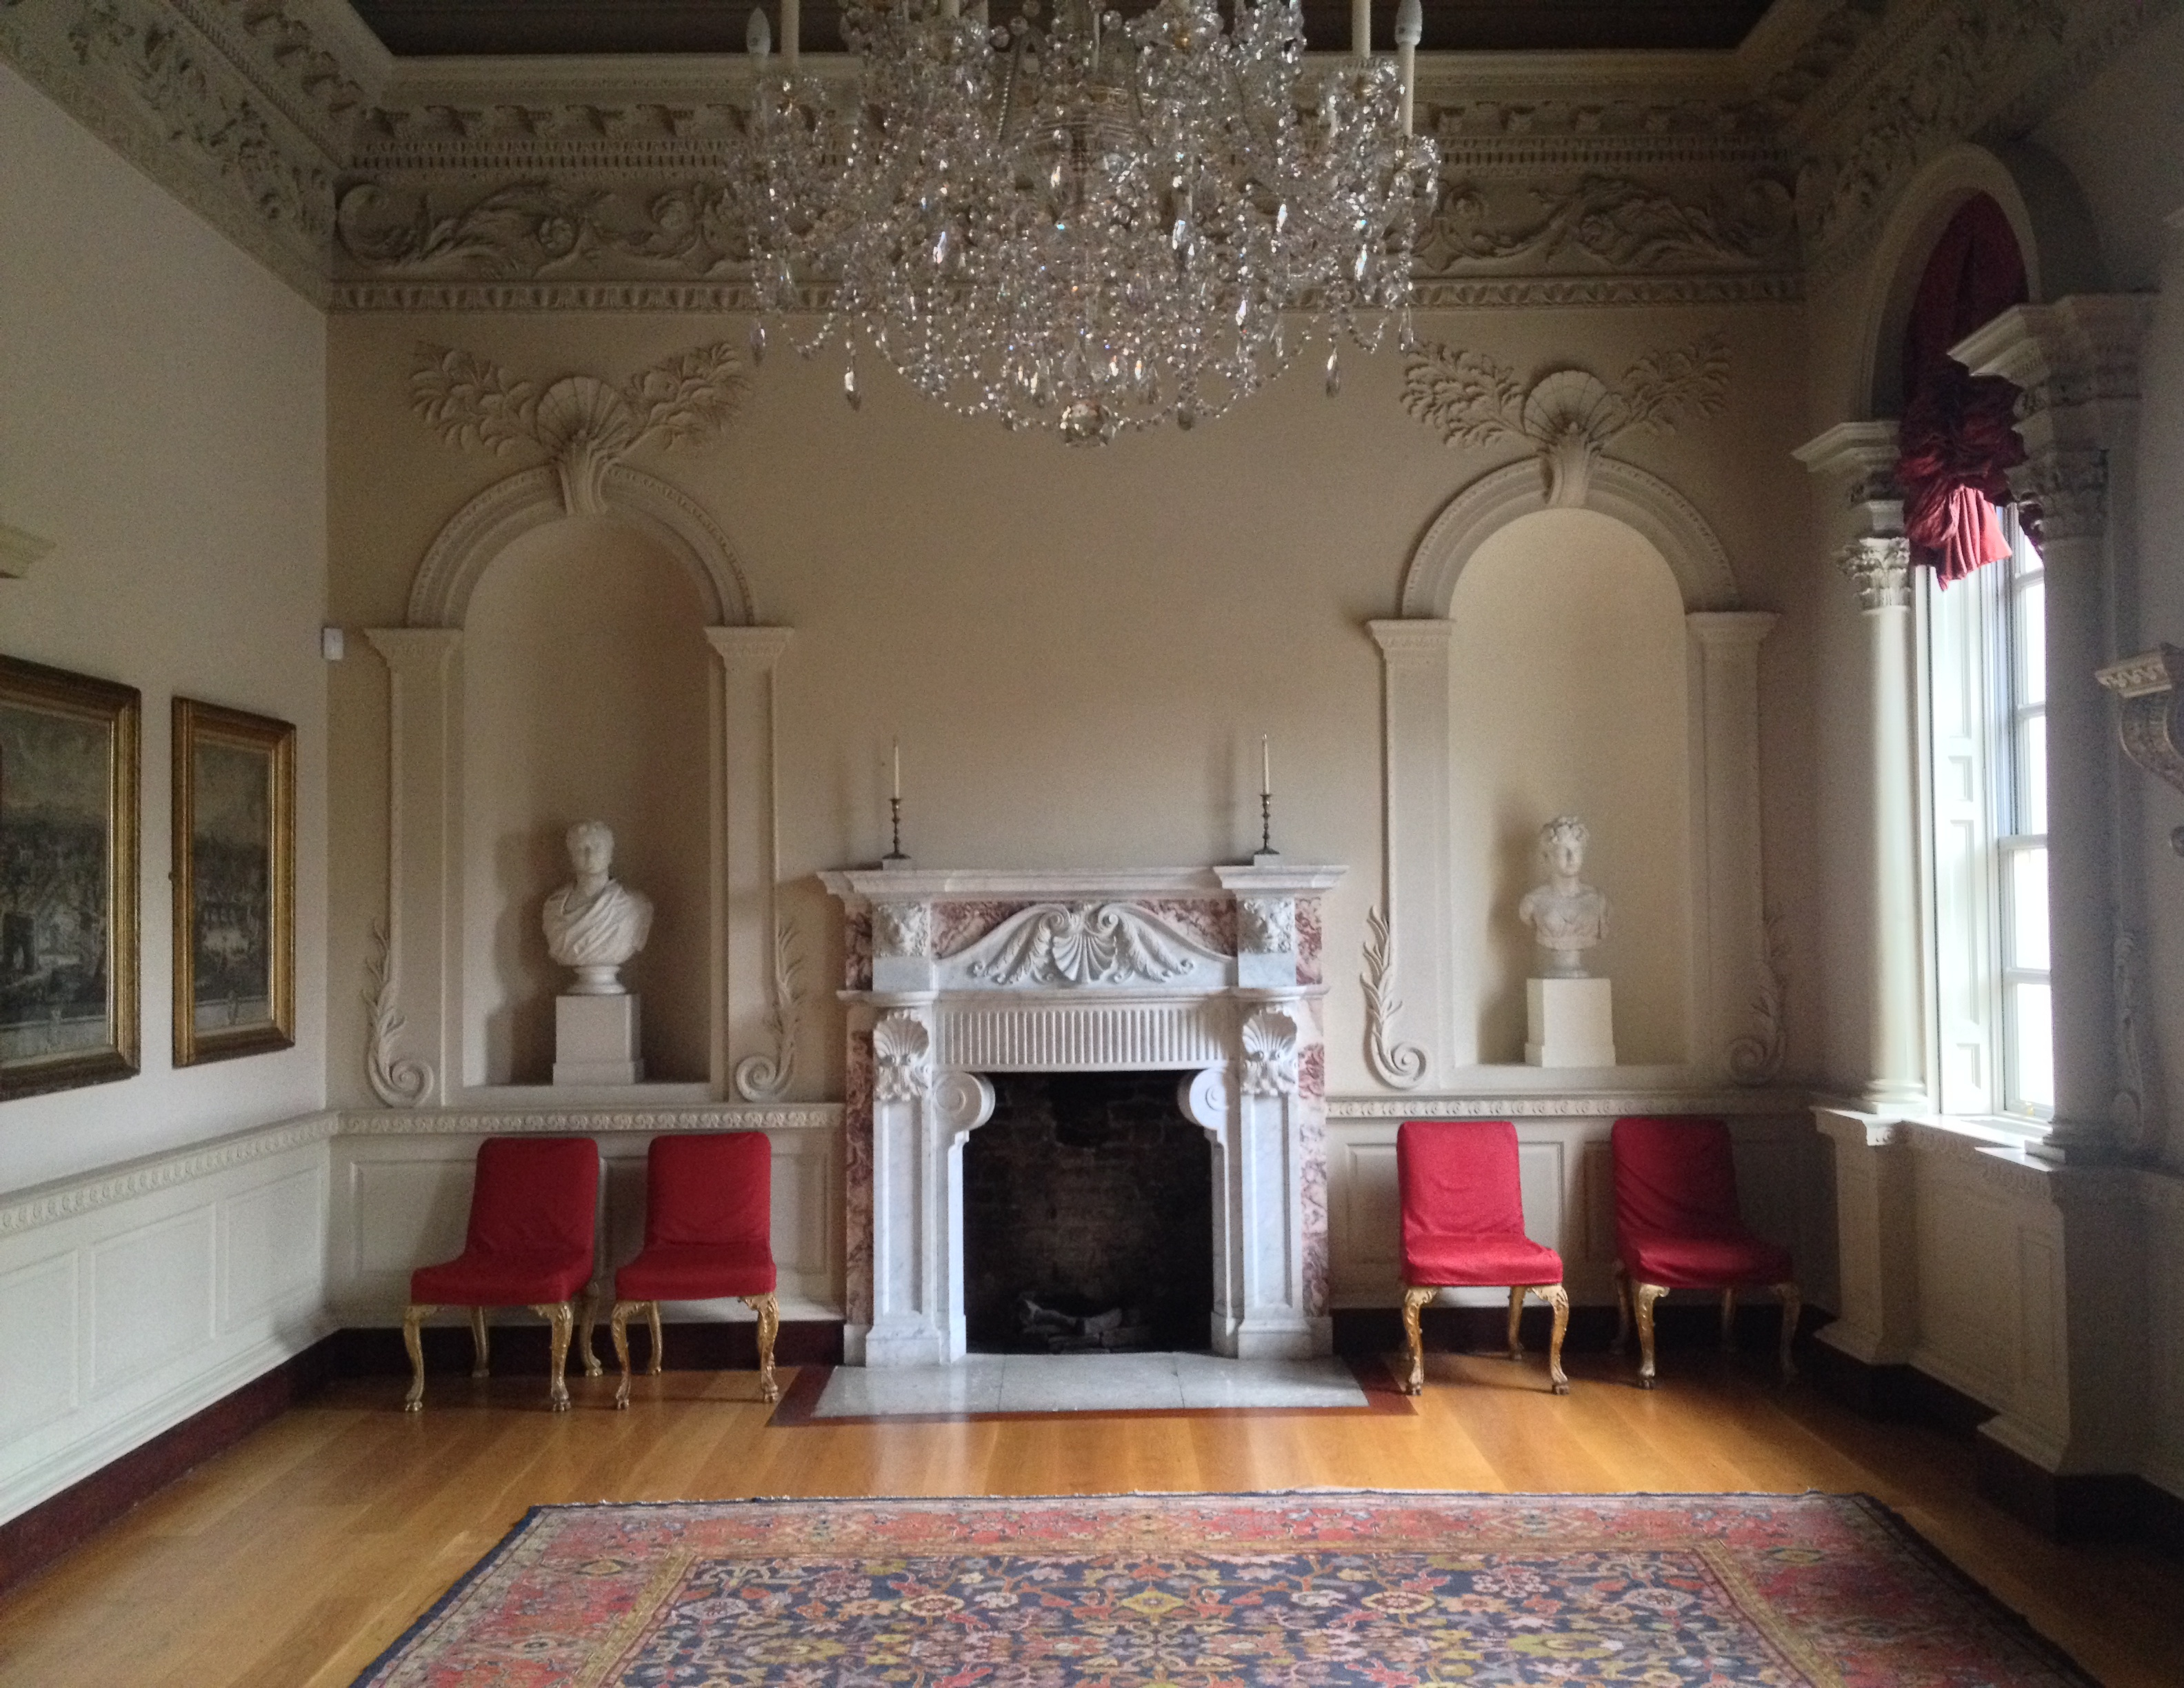 The Most Beautiful Room in Ireland? « The Irish Aesthete on Beautiful Room  id=60007